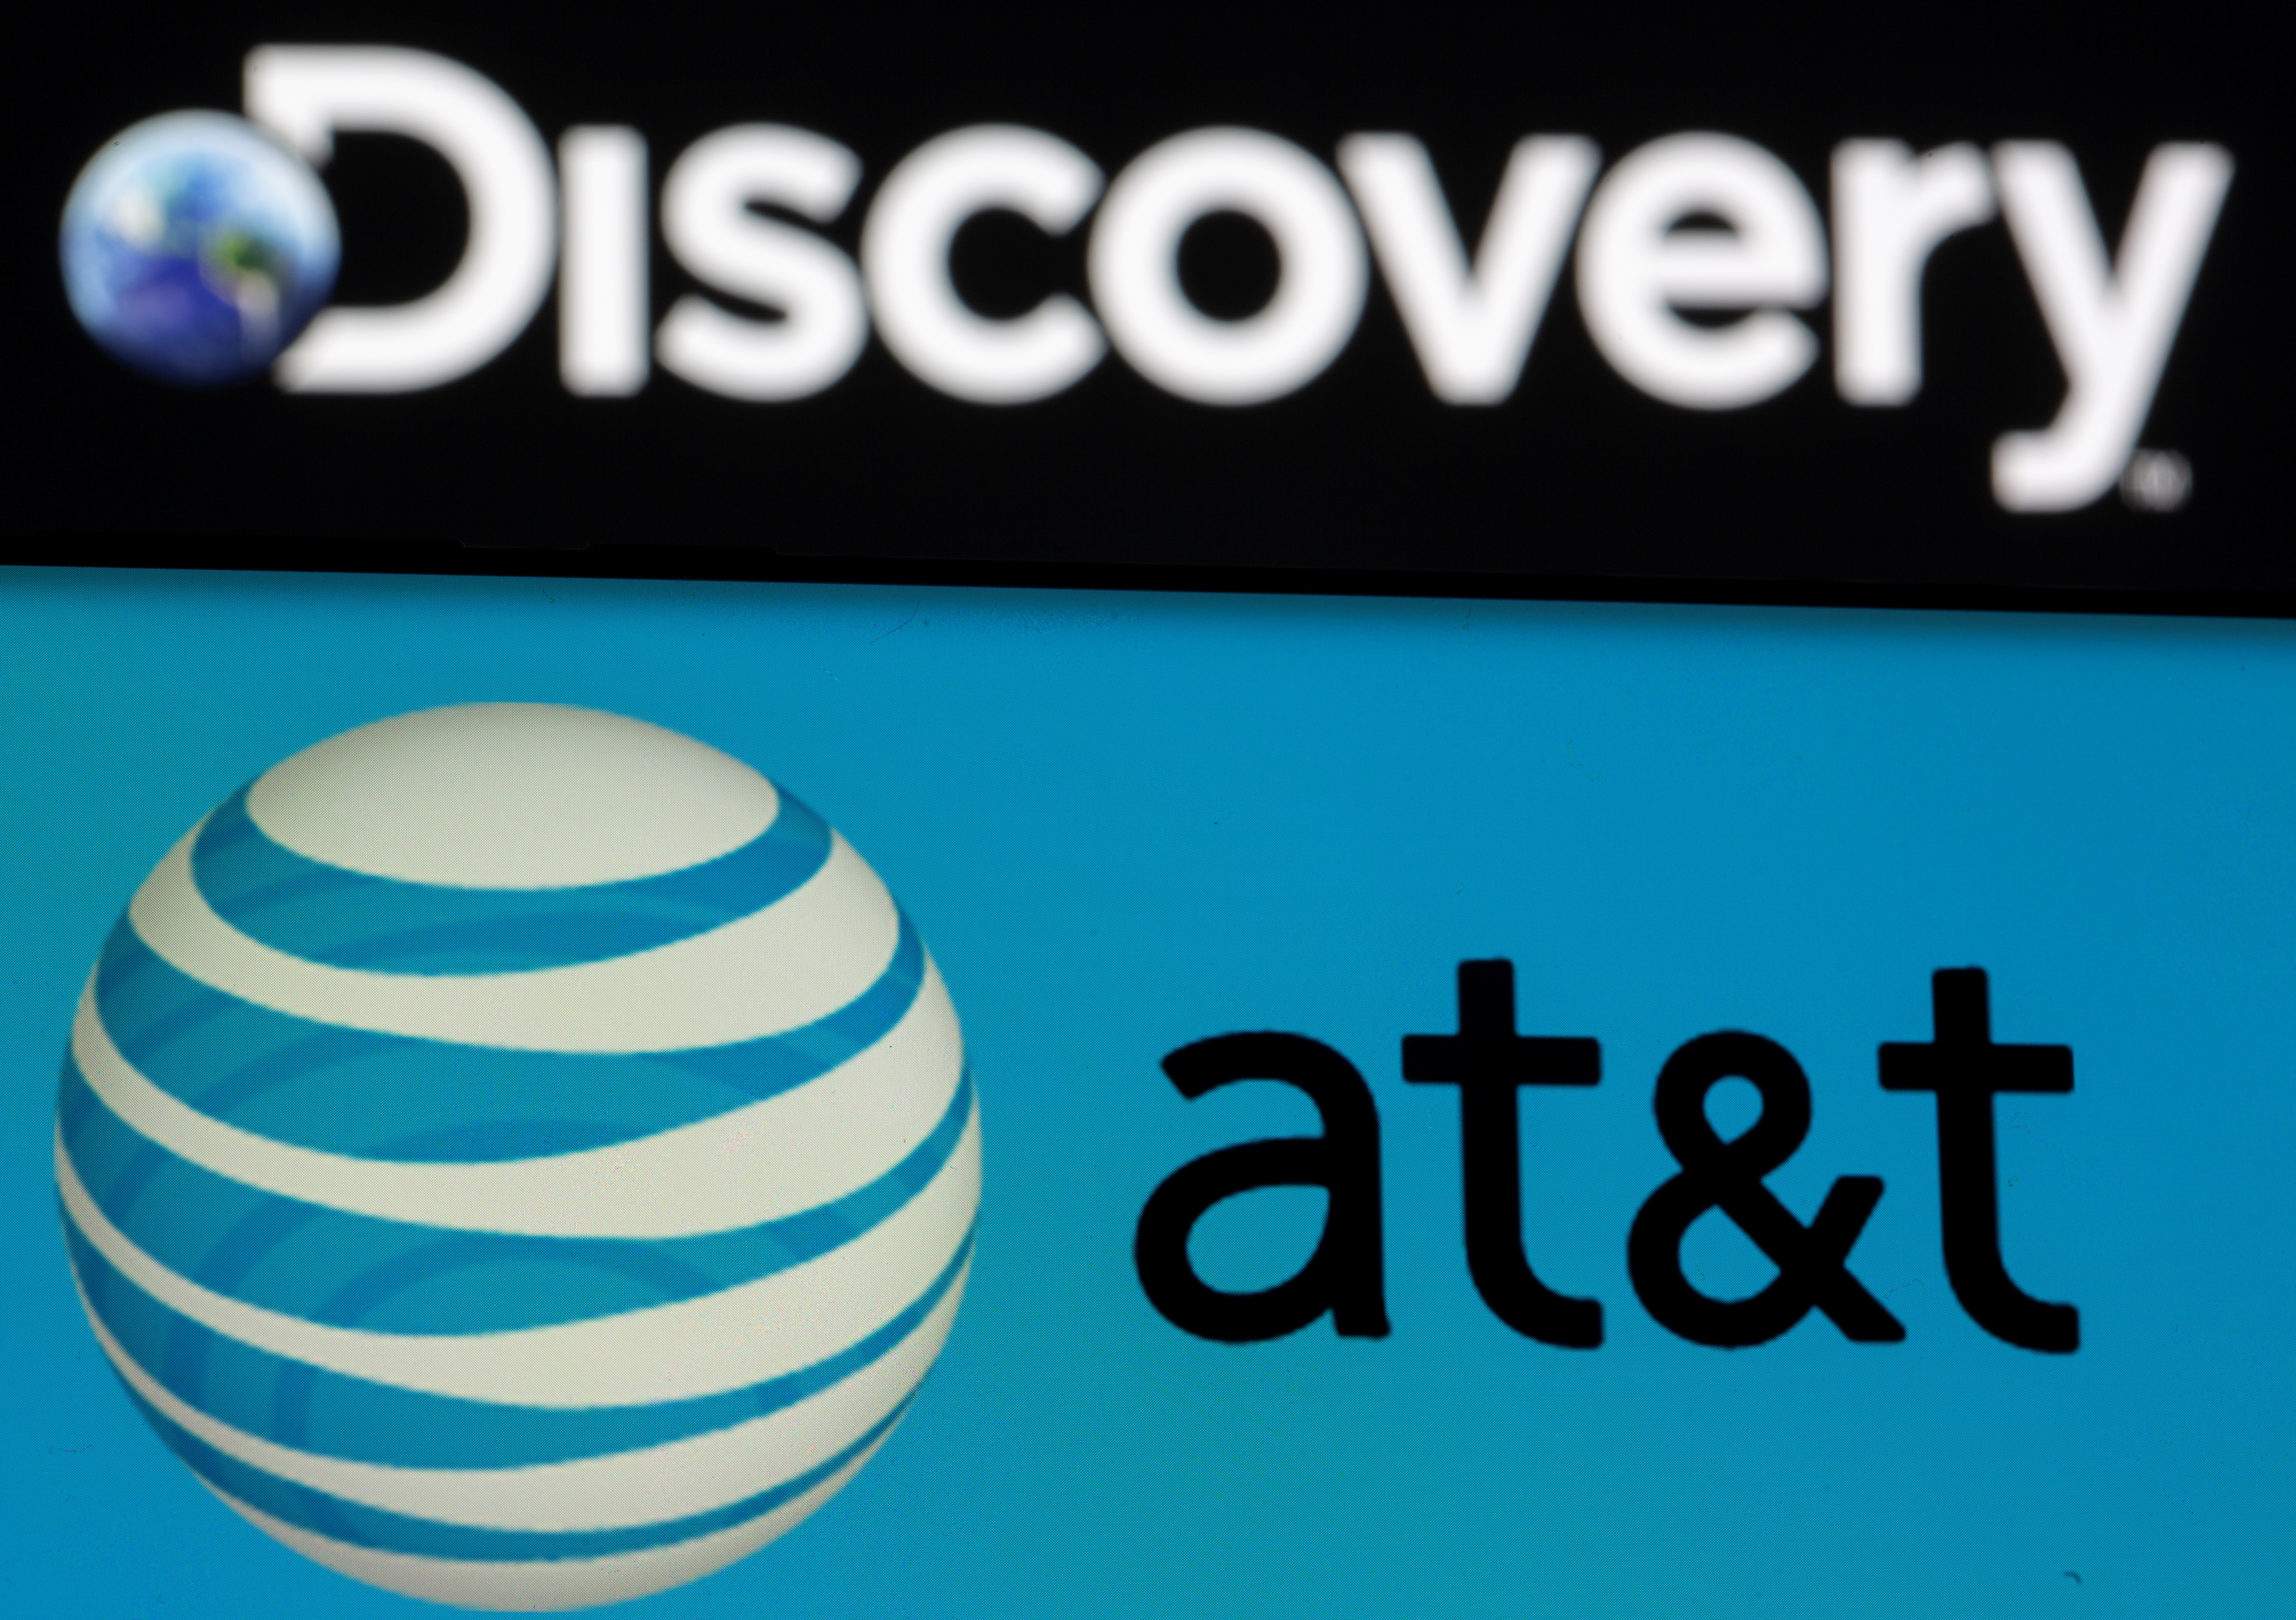 AT&T logo is seen on a smartphone in front of displayed Discovery logo in this illustration taken May 17, 2021. REUTERS/Dado Ruvic